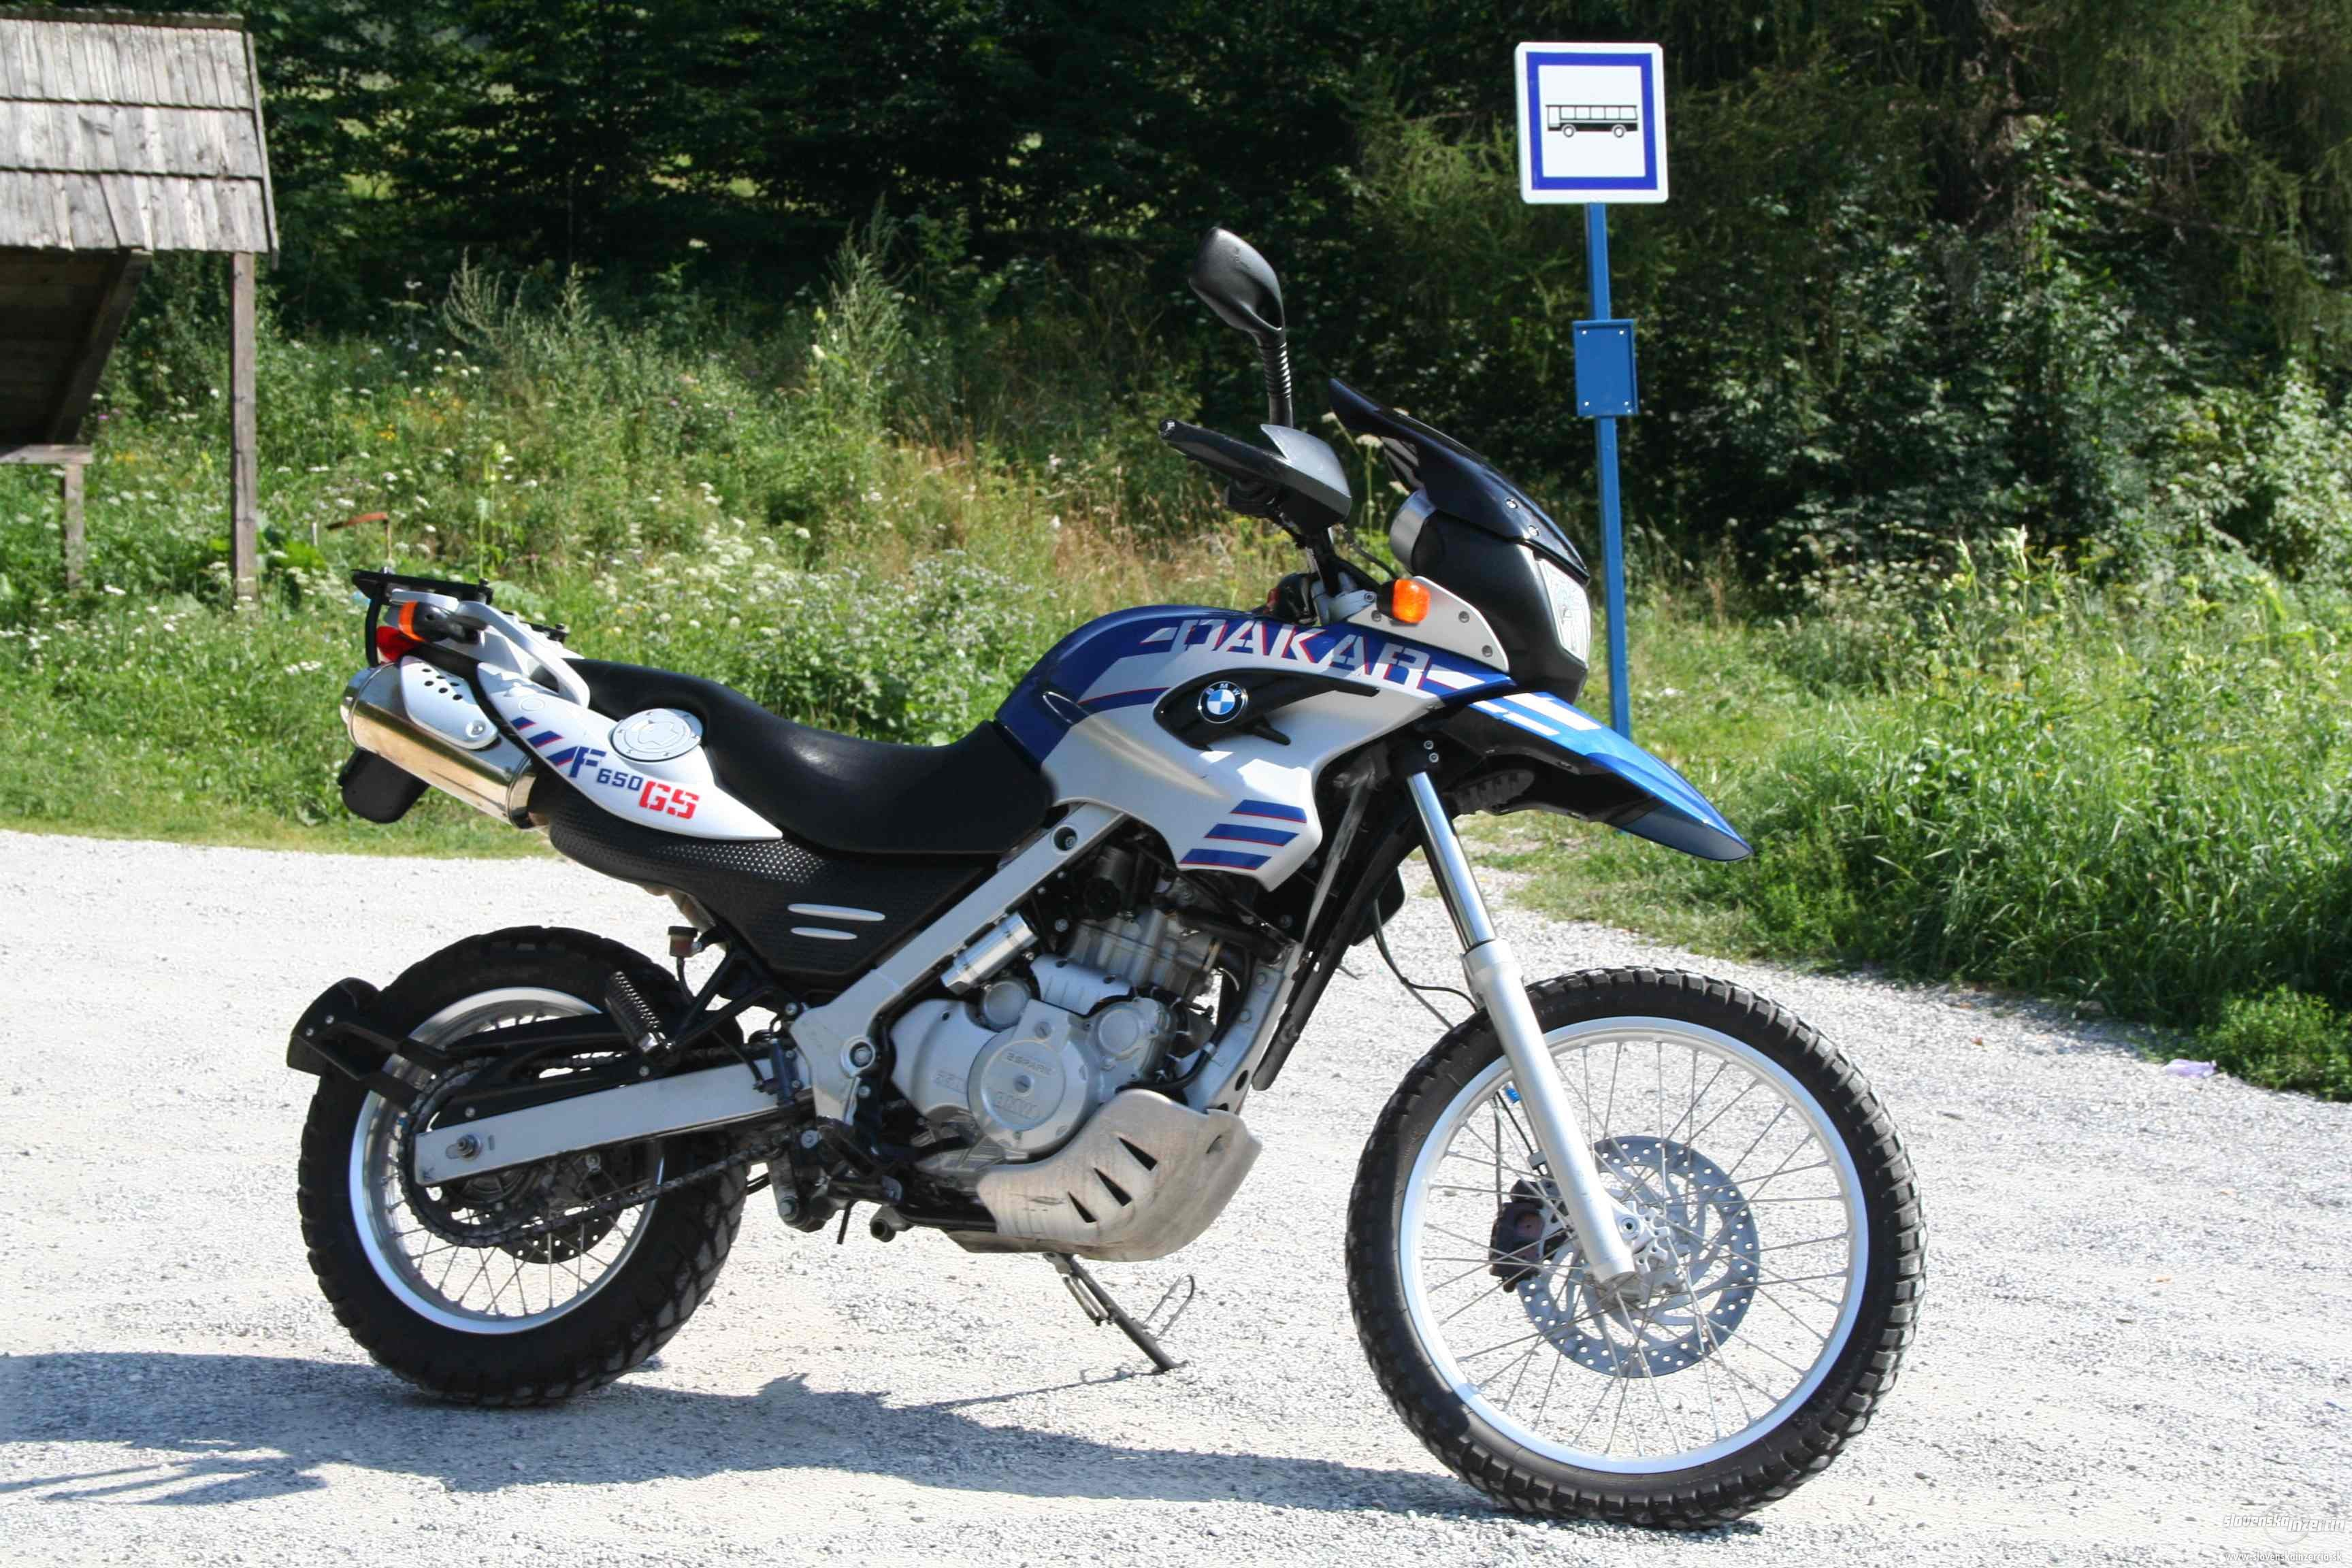 BMW F650GS Dakar 2000 images #6685